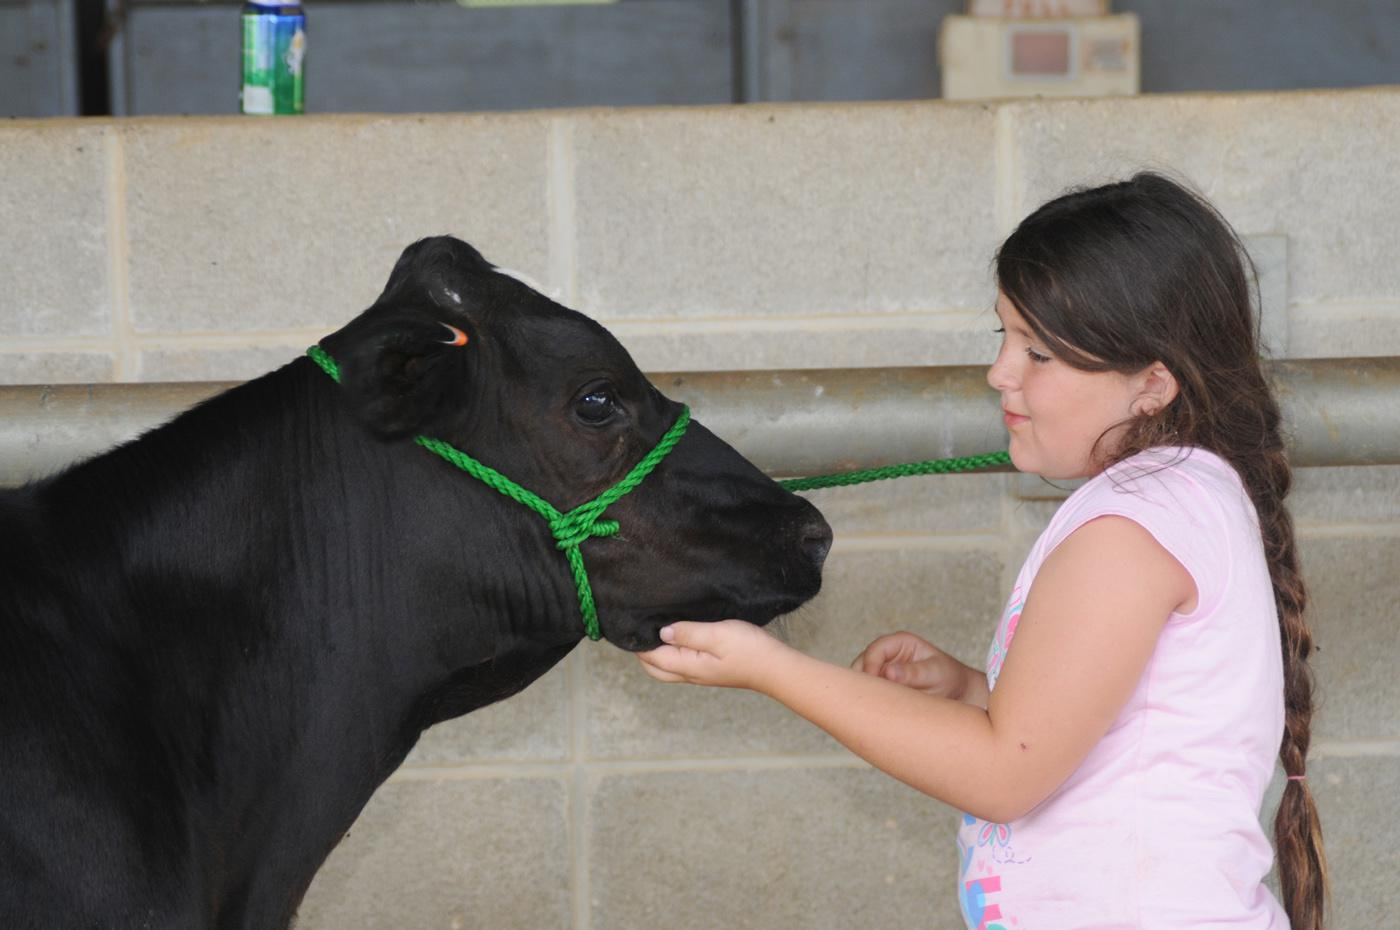 Emmie Rowlen, 8, of Webster County, affectionately pats her dairy calf during a break at Mississippi State University's 4-H dairy cow camp. (Photo by MSU Ag Communications/Kat Lawrence)